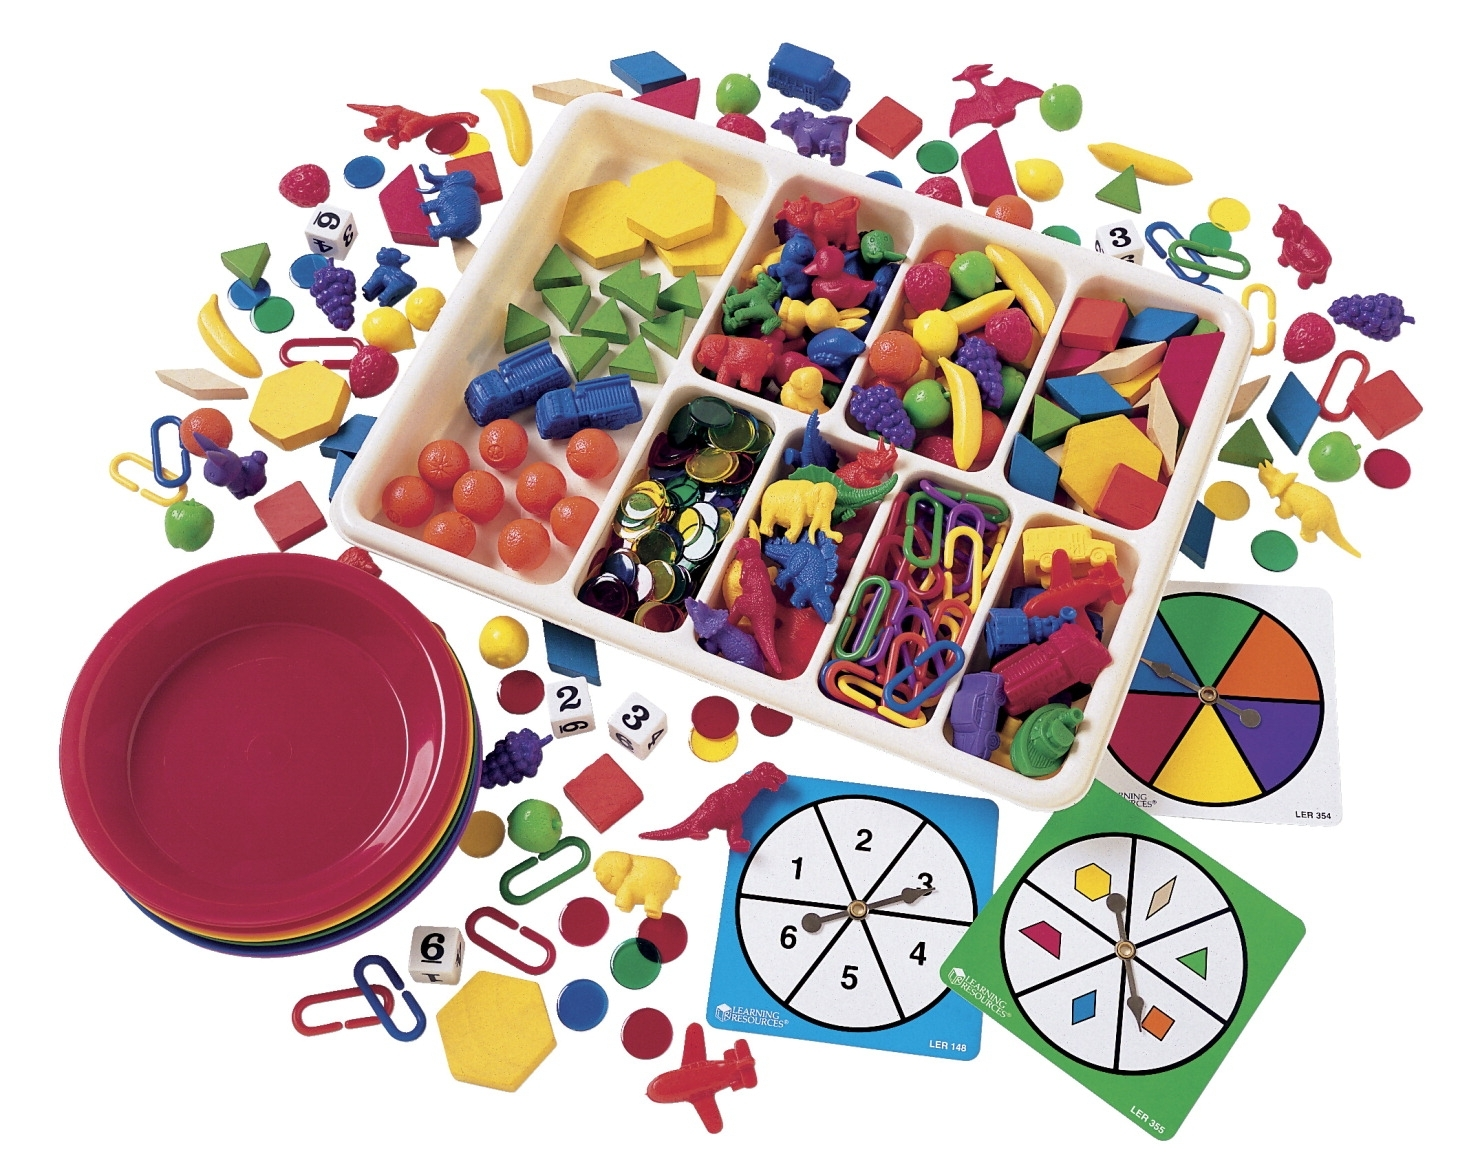 Learning: Classroom Math Sorting Activities & Sorting Trays - 347126 - Learning Resources Deluxe Sorting Set With Activity Cards 347126